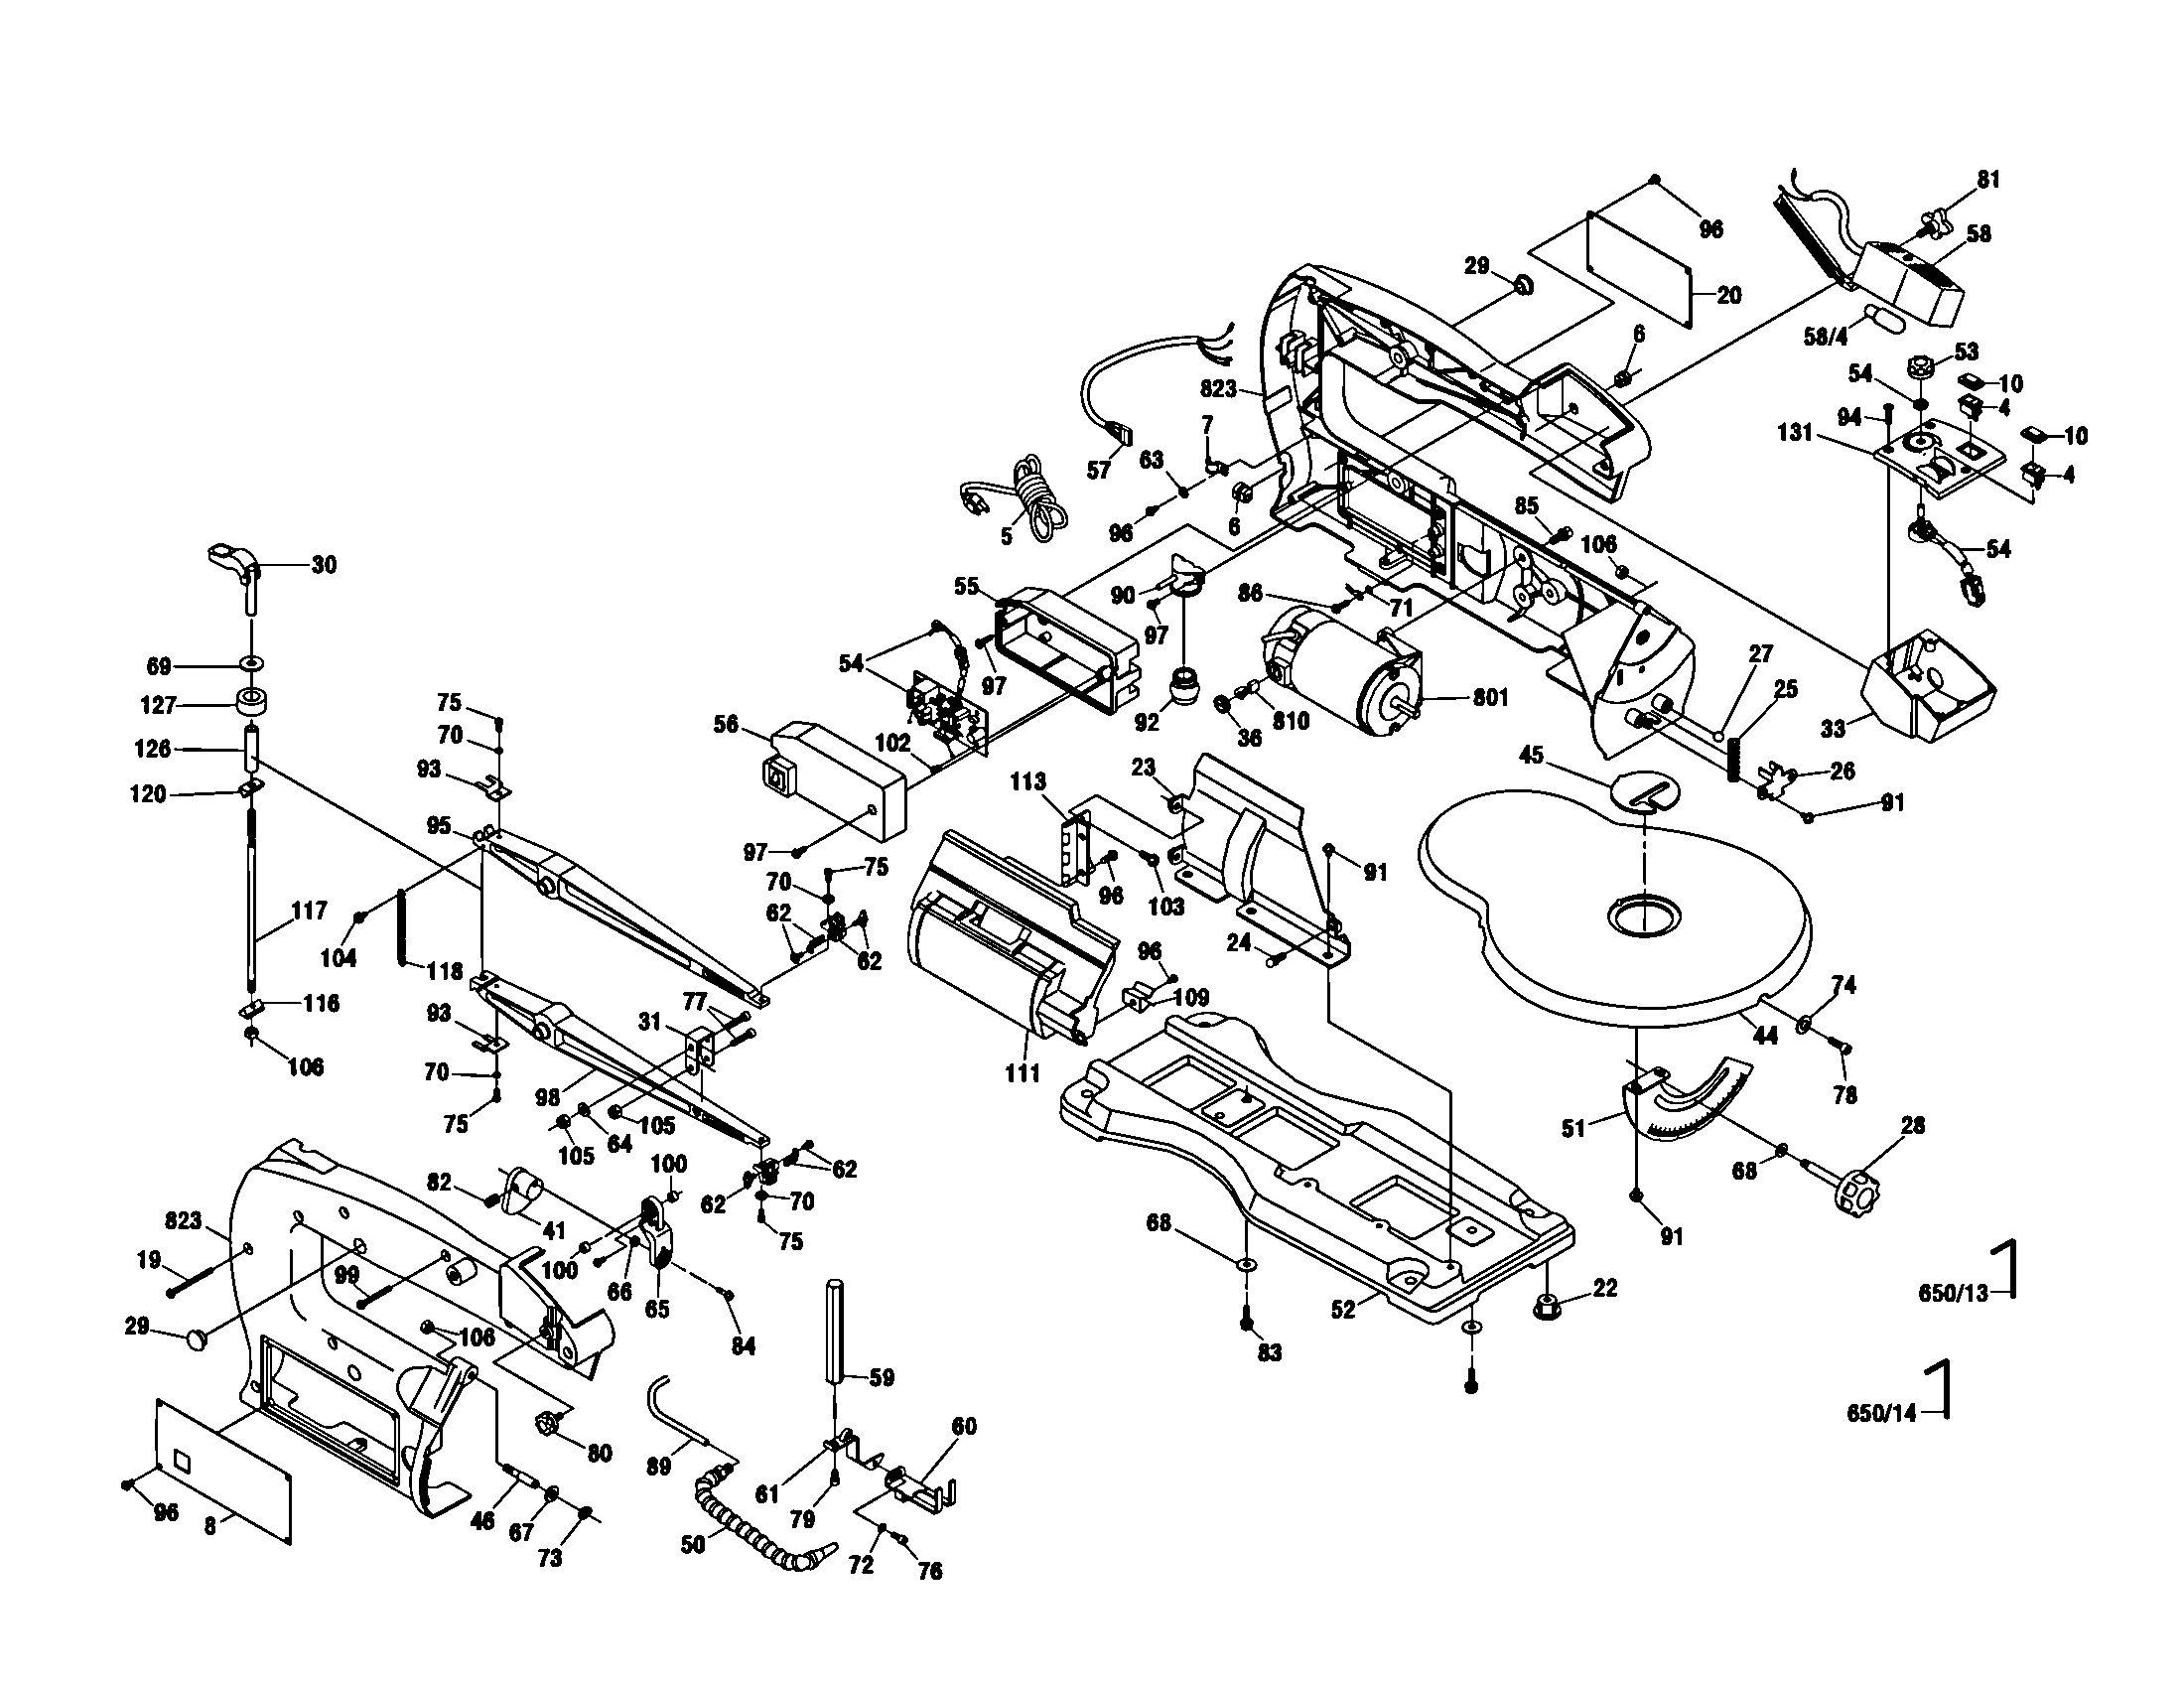 Scroll Saw Diagram Amp Parts List For Model Dremel